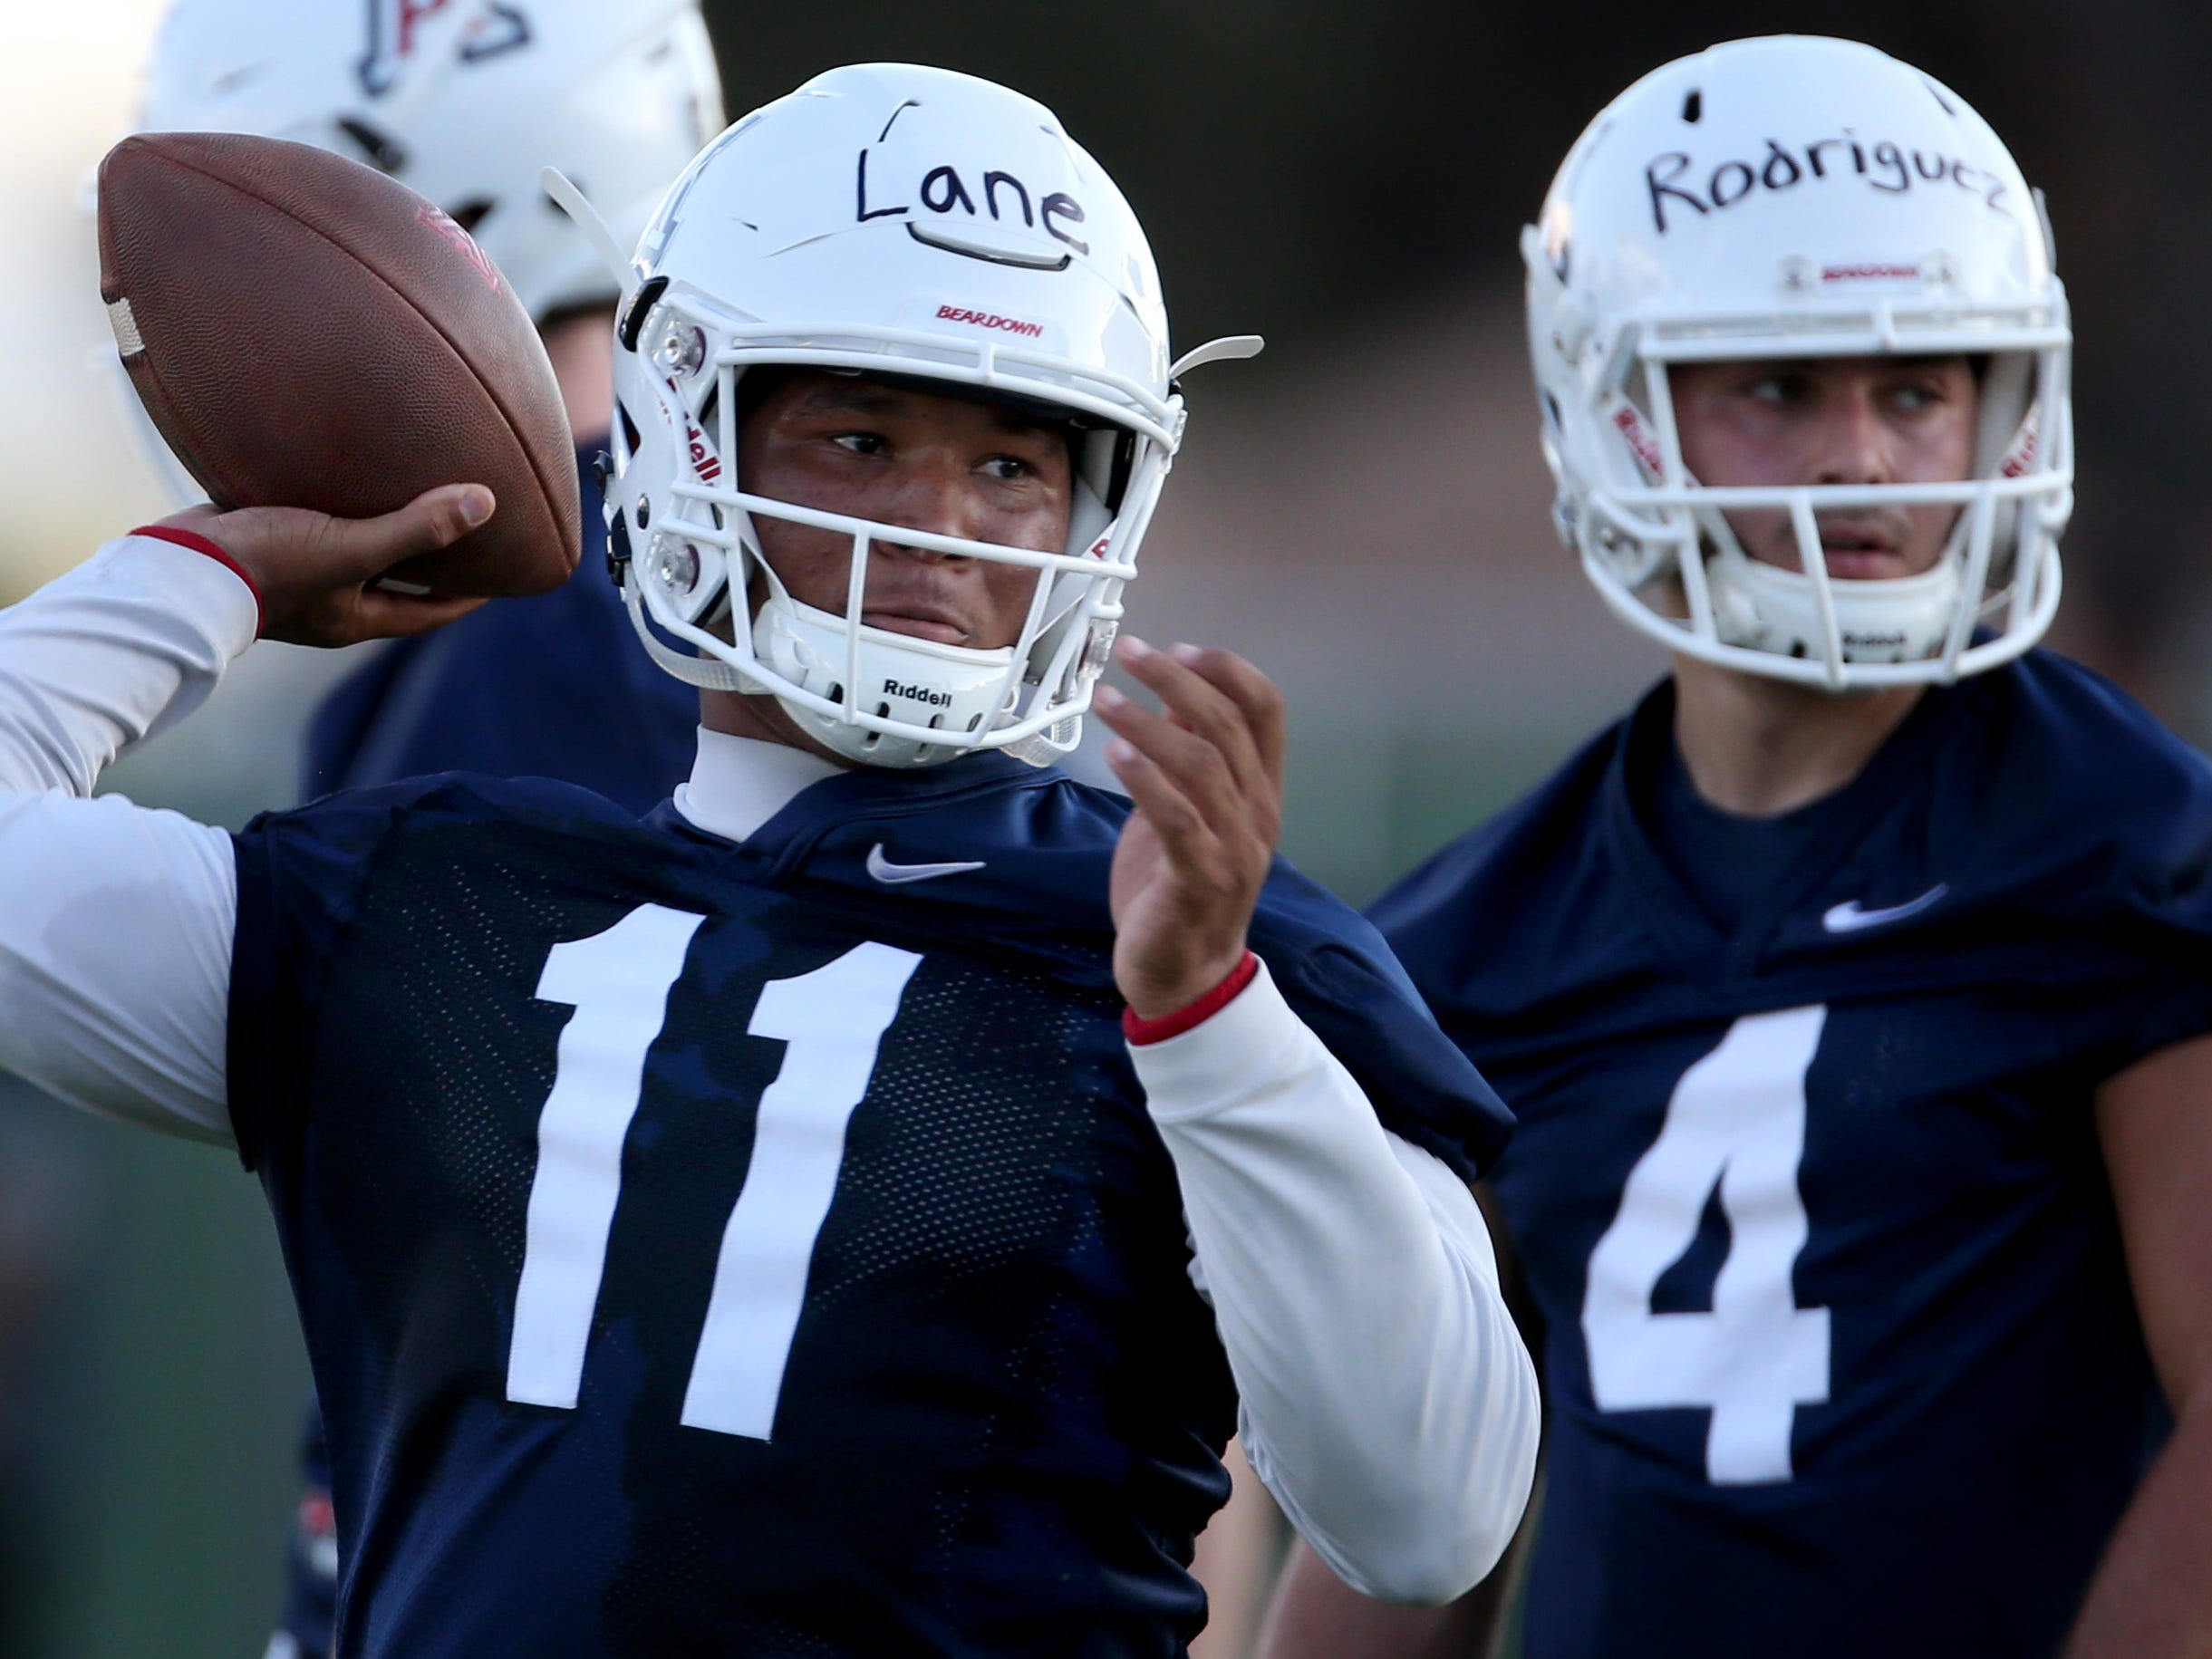 Wildcat quarterback K'Hari Lane draws a bead on a receiver while working out at the first day of practice for the University of Arizona, Friday, August 3, 2018, Tucson, Ariz.